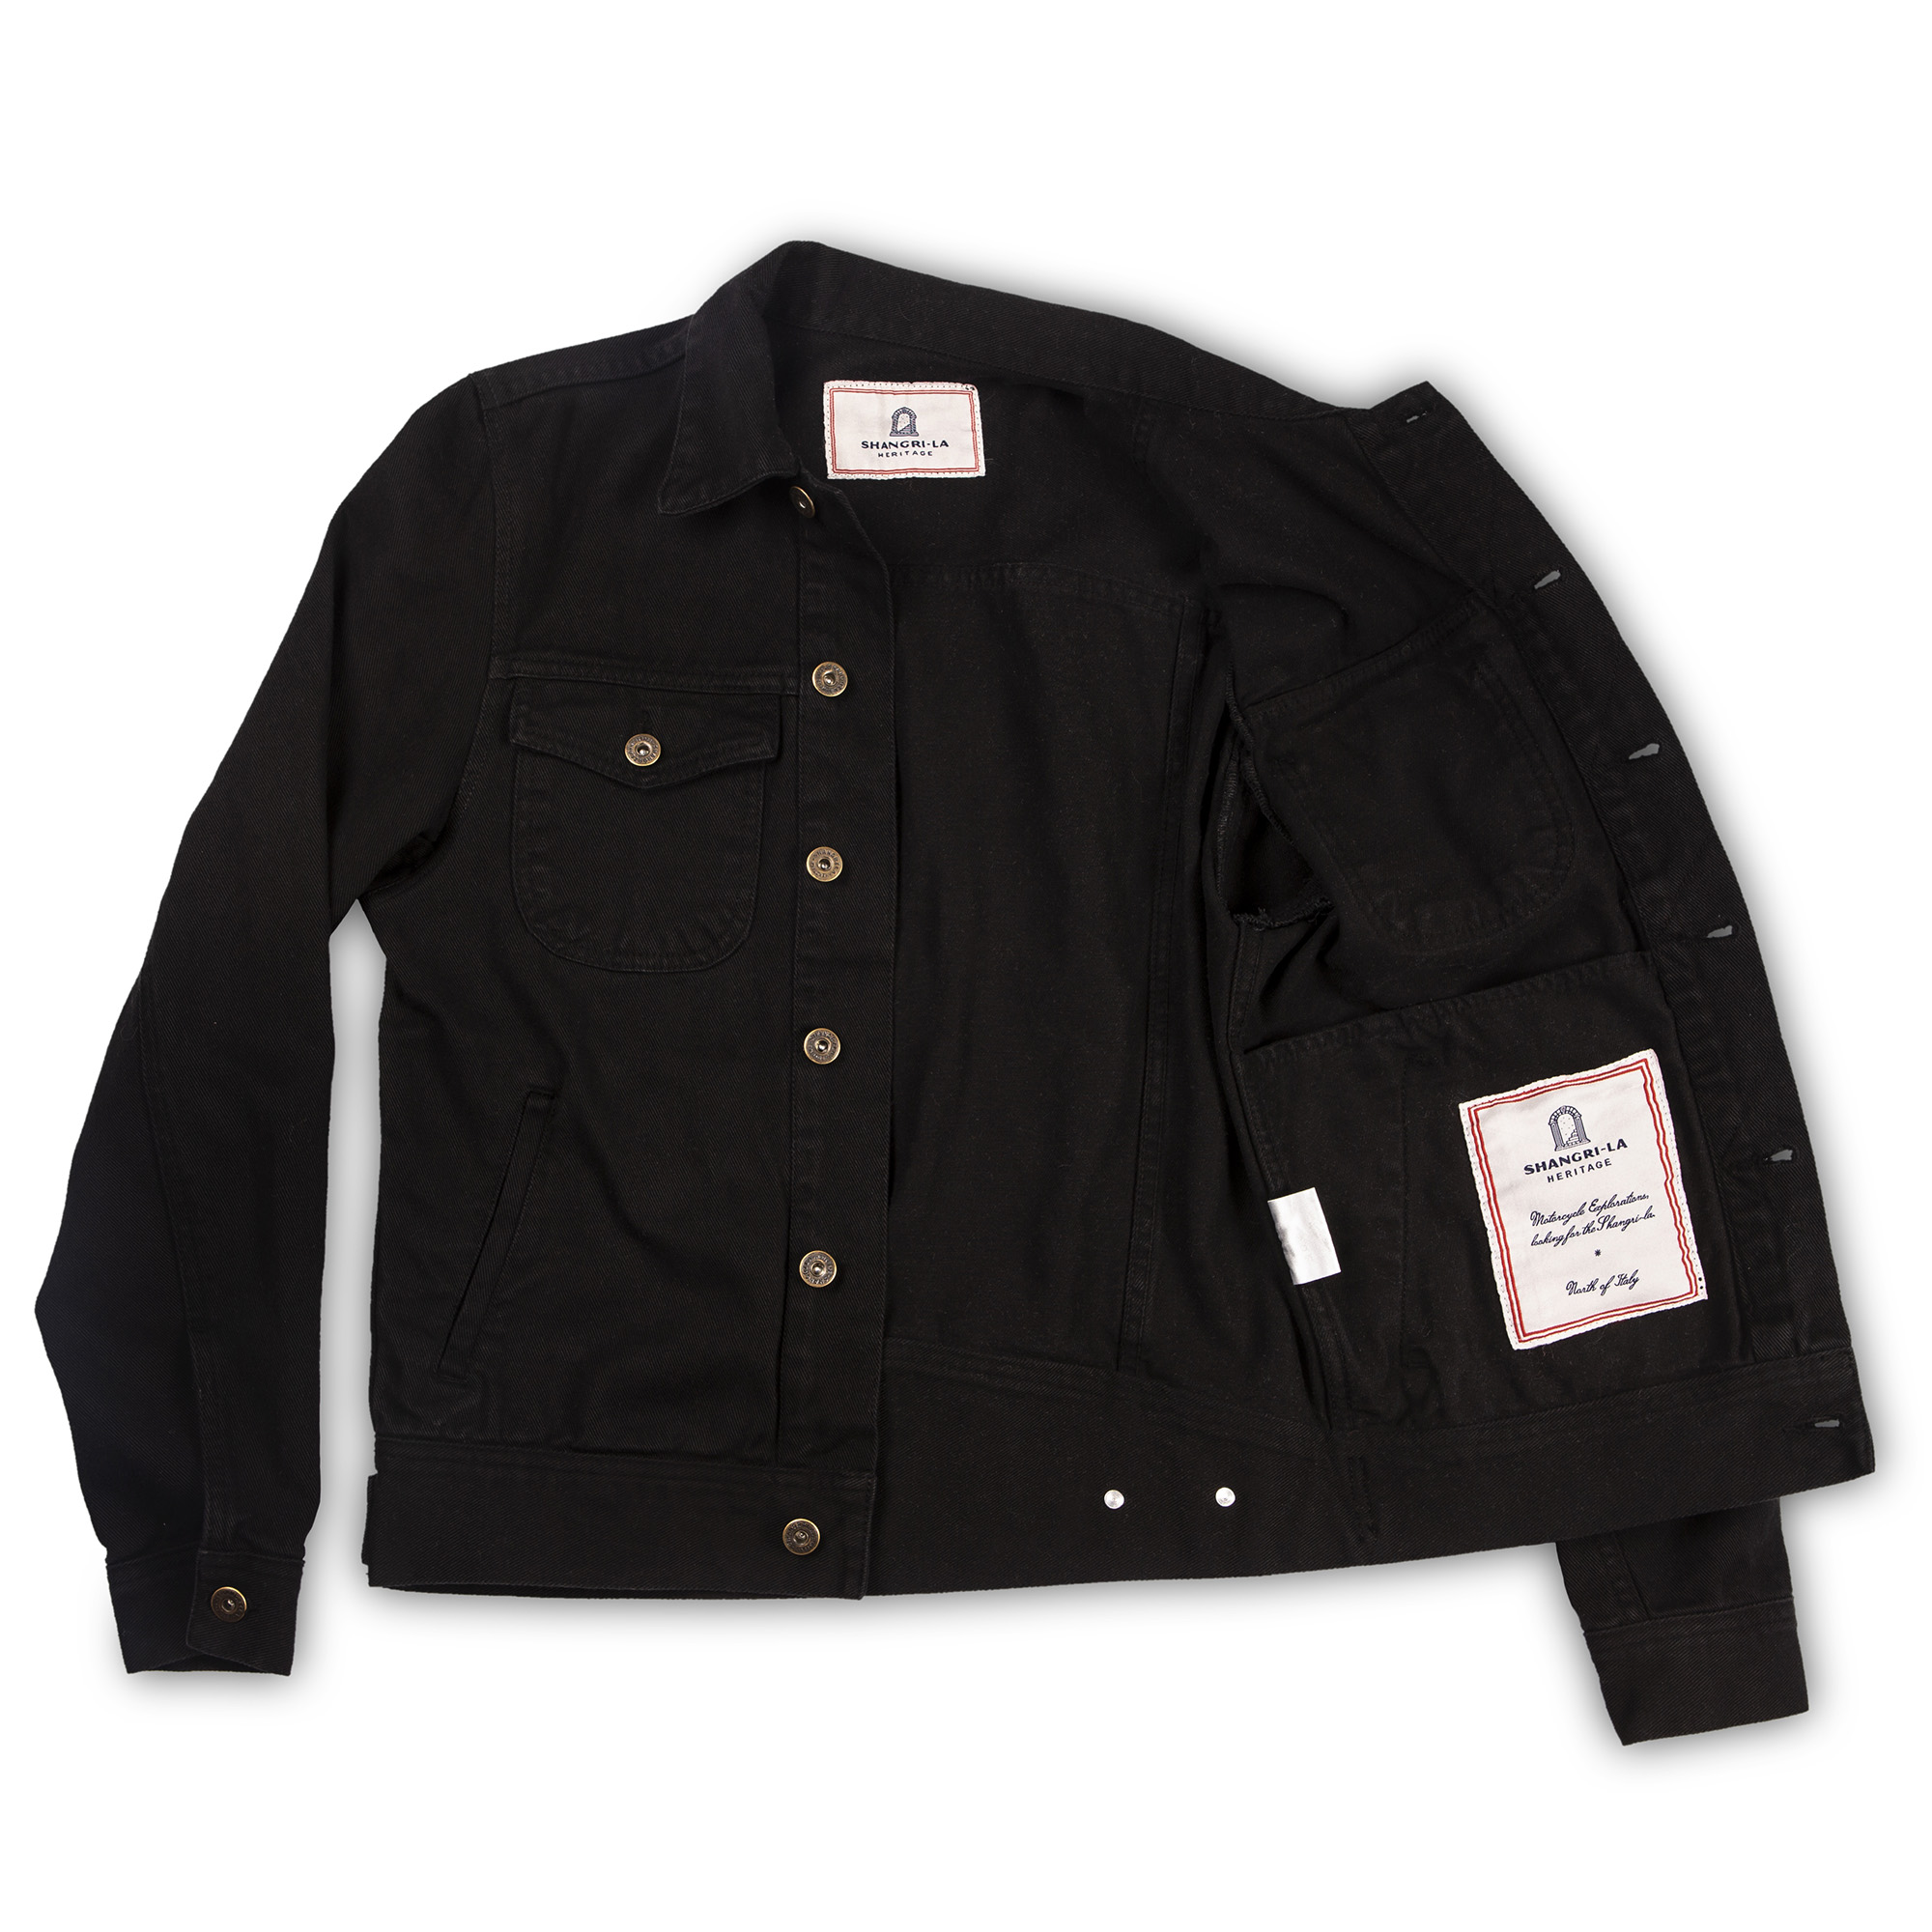 shangri-la-heritage-new-single-rider-black-canvas-jacket-still-life-open